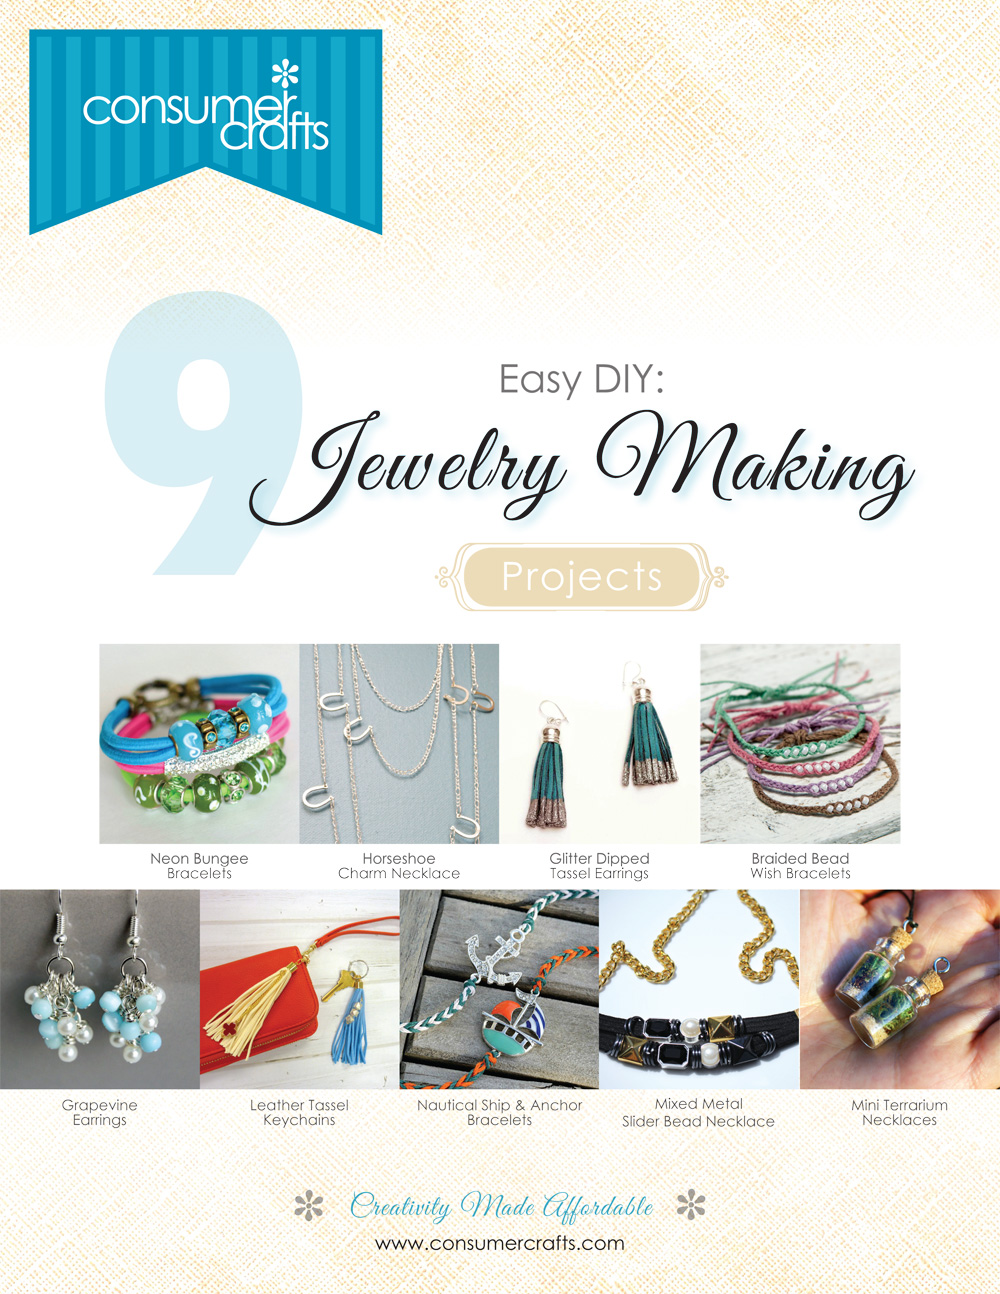 Get a free jewelry ebook from consumer crafts plus a giveaway jewelry e book cover june 2014 fandeluxe Choice Image